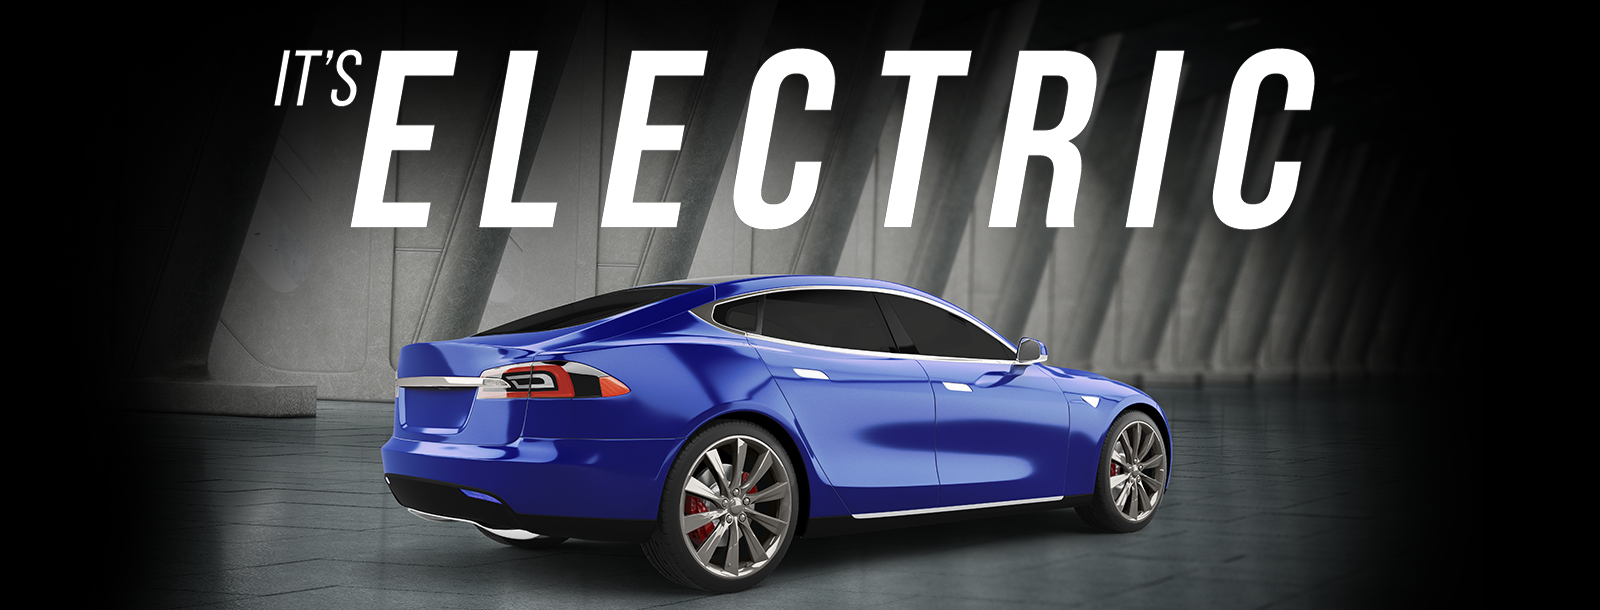 Hard Rock Casino Promo - Win a 2018 Tesla Model S Worth $93,000